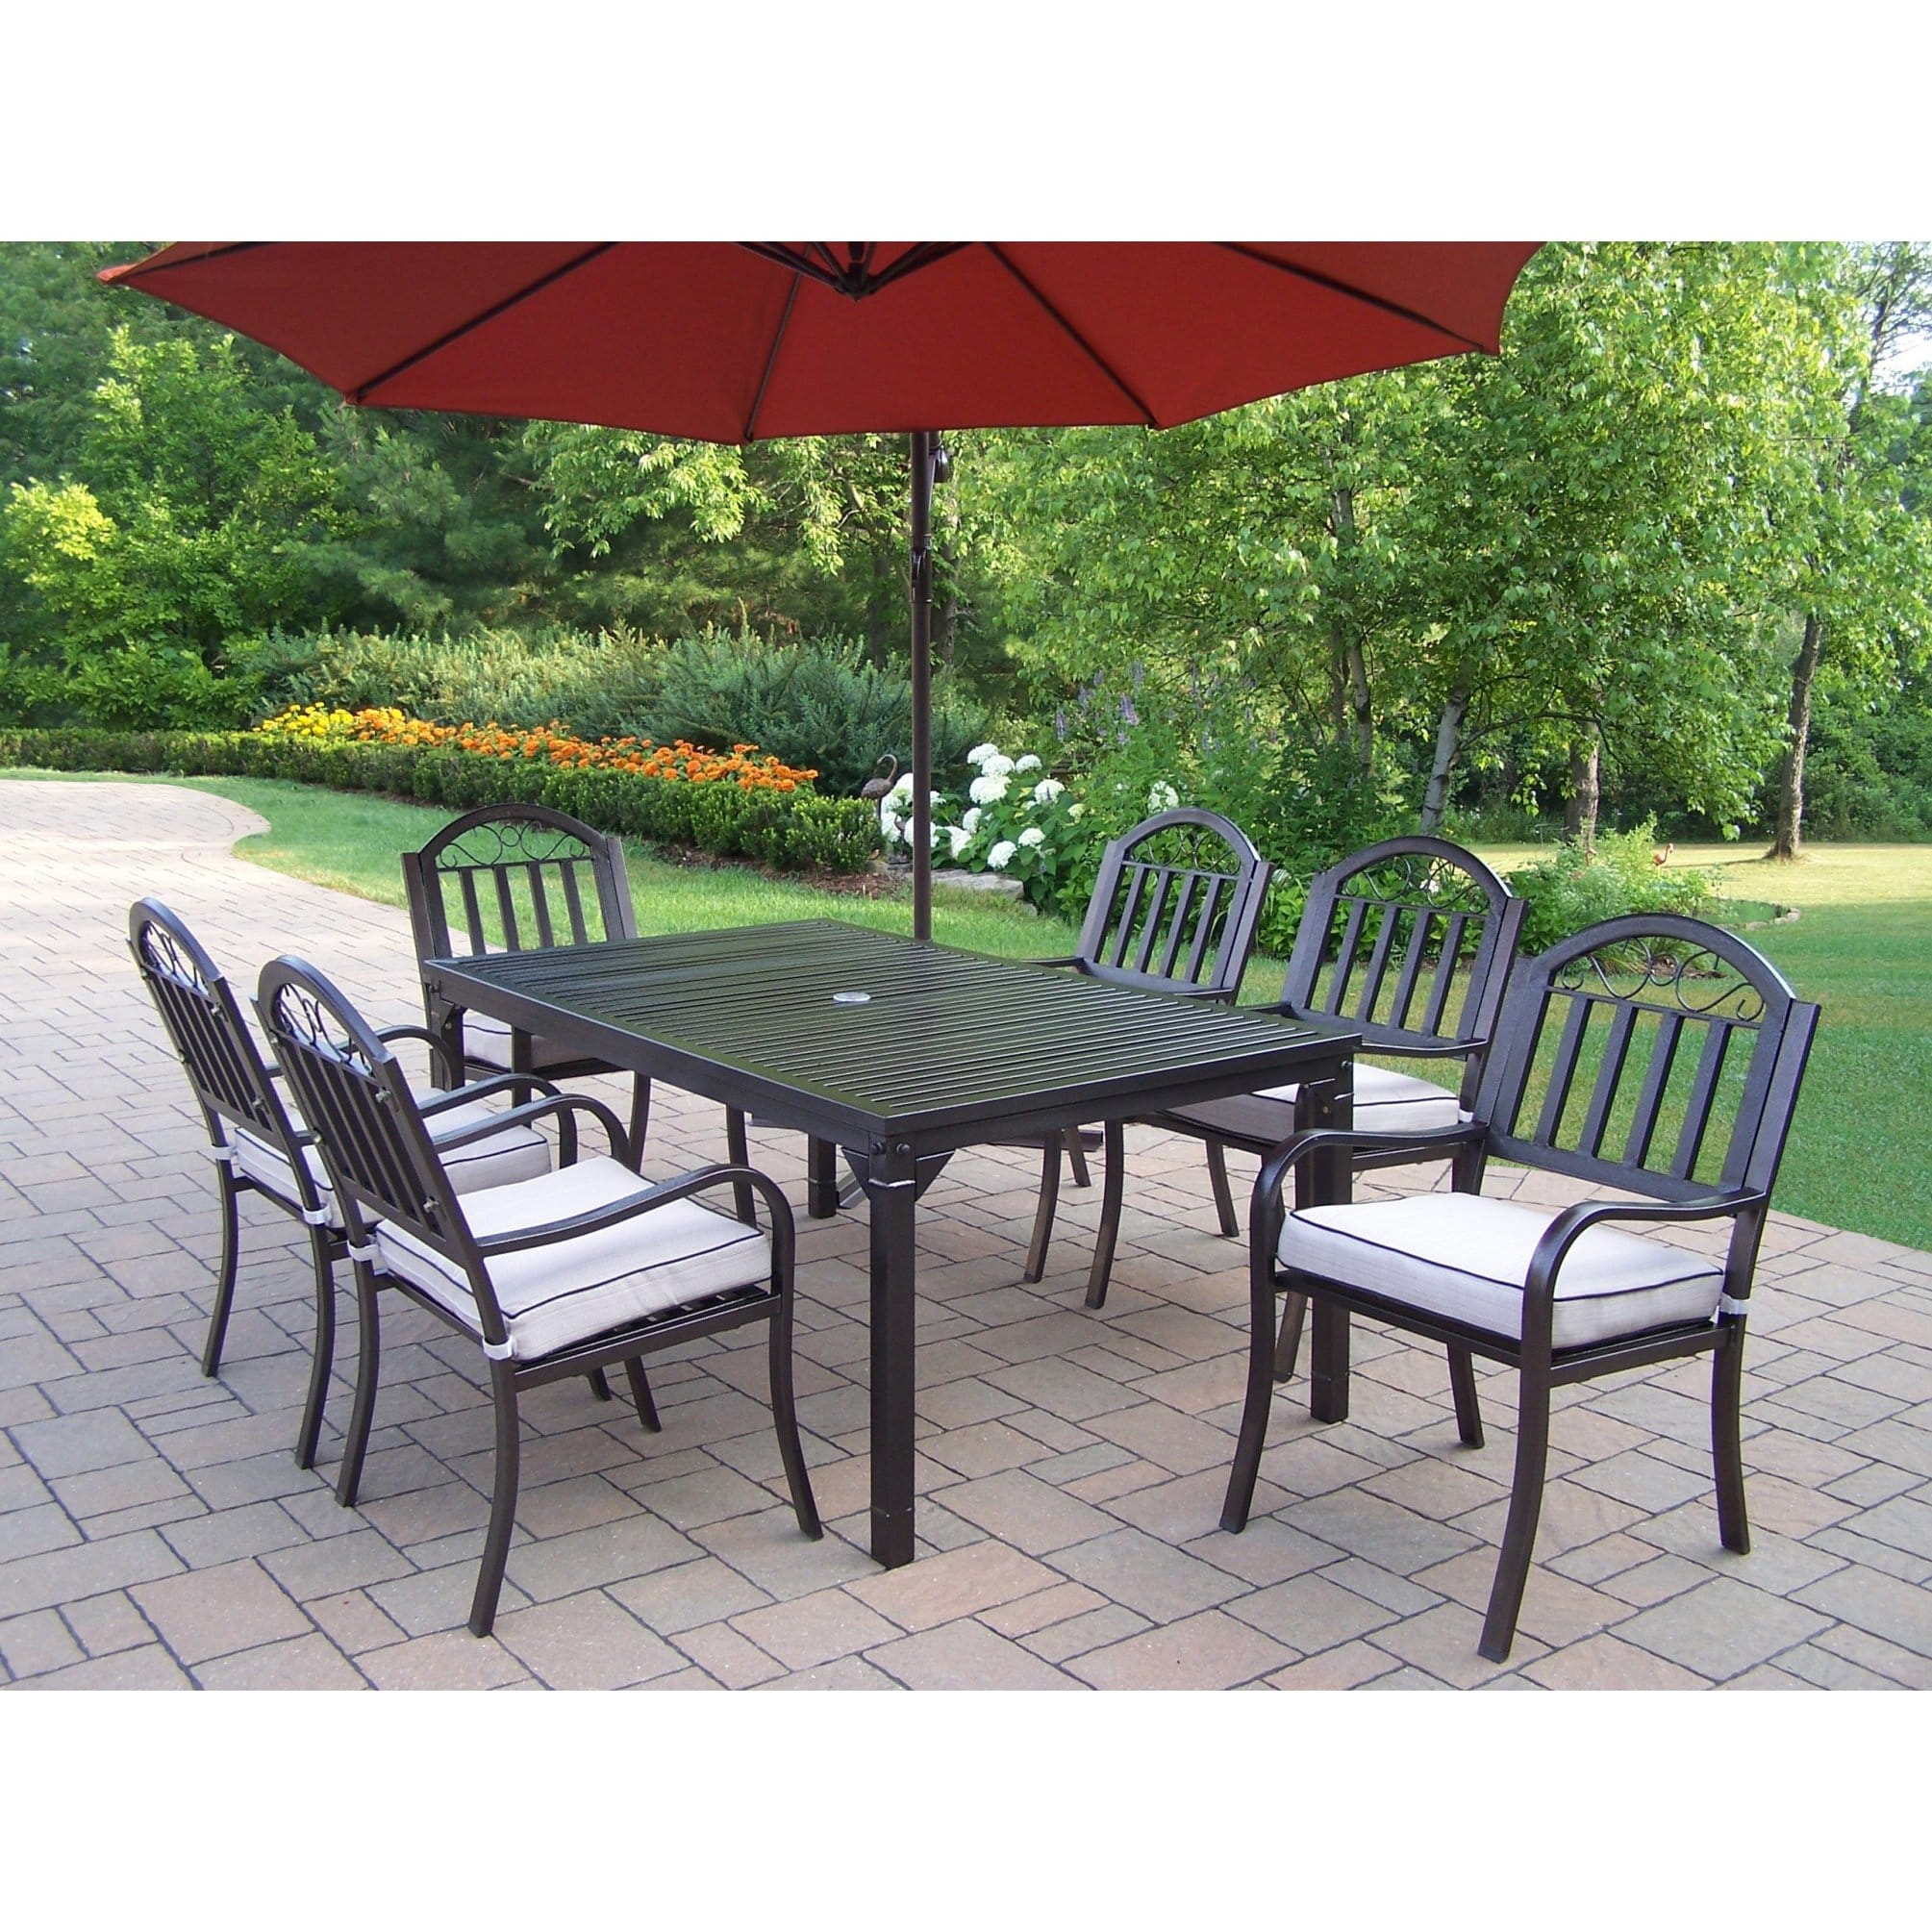 Oakland Living Corporation Hometown 8-Piece Cushioned Outdoor Dining Set with 10-ft Umbrella